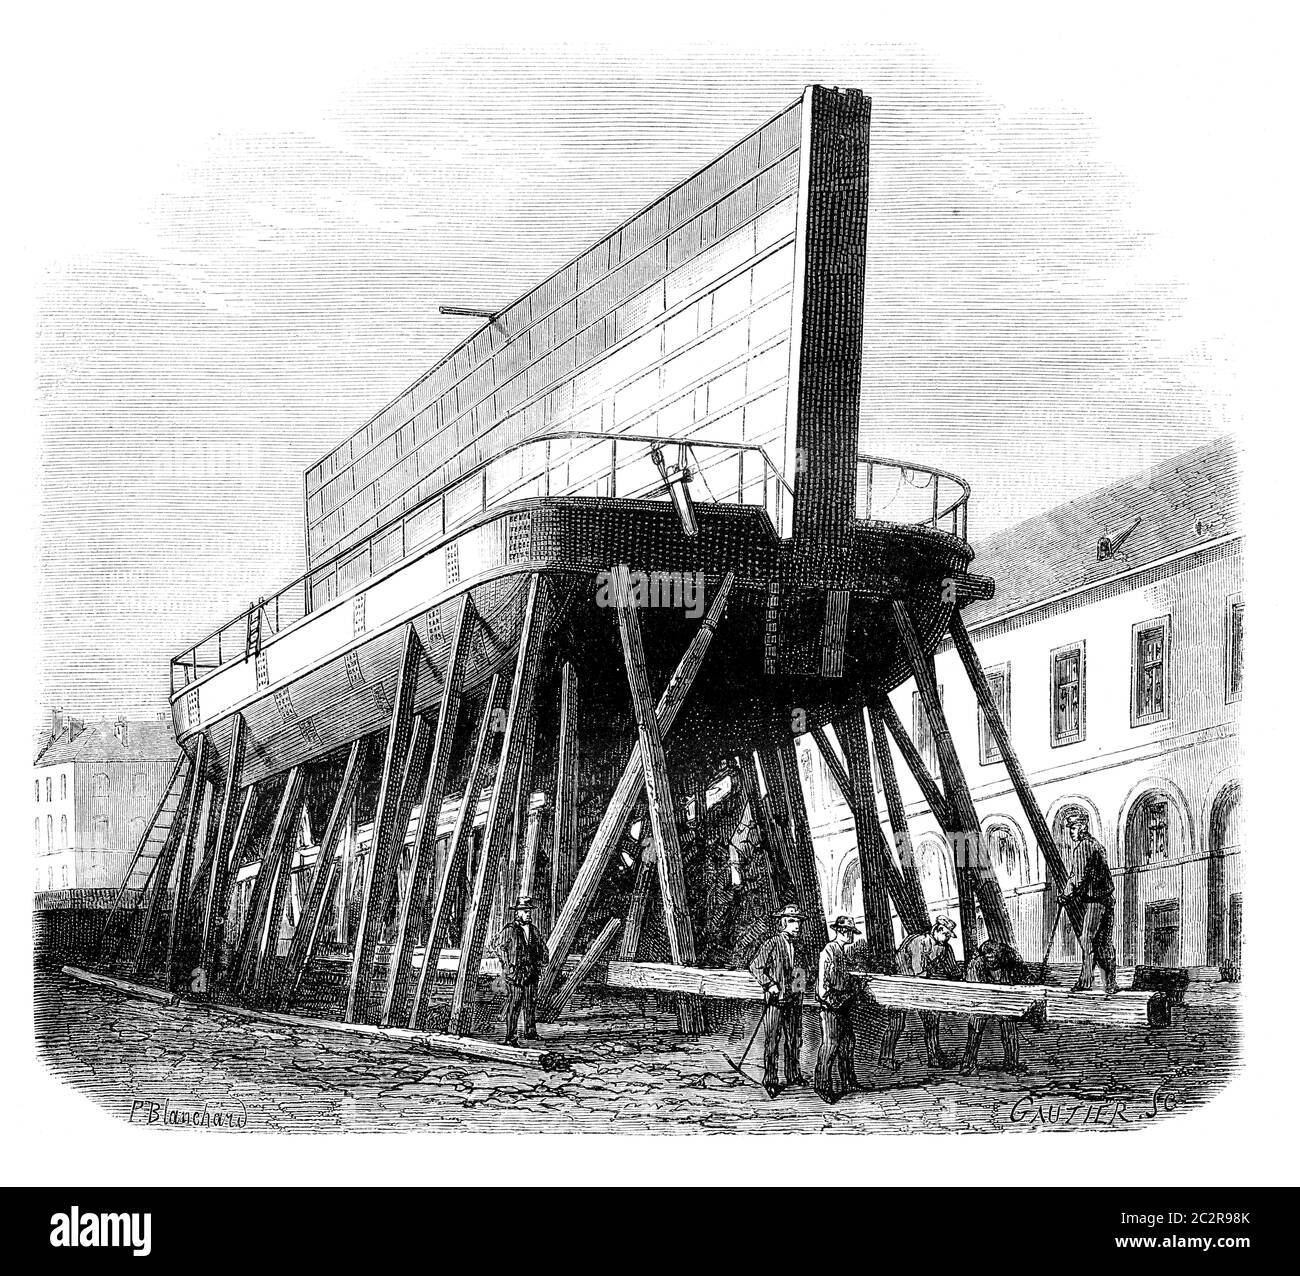 https www alamy com port of brest boat iron gate 1 drawing ph blanchard vintage engraved illustration magasin pittoresque 1875 image363159235 html